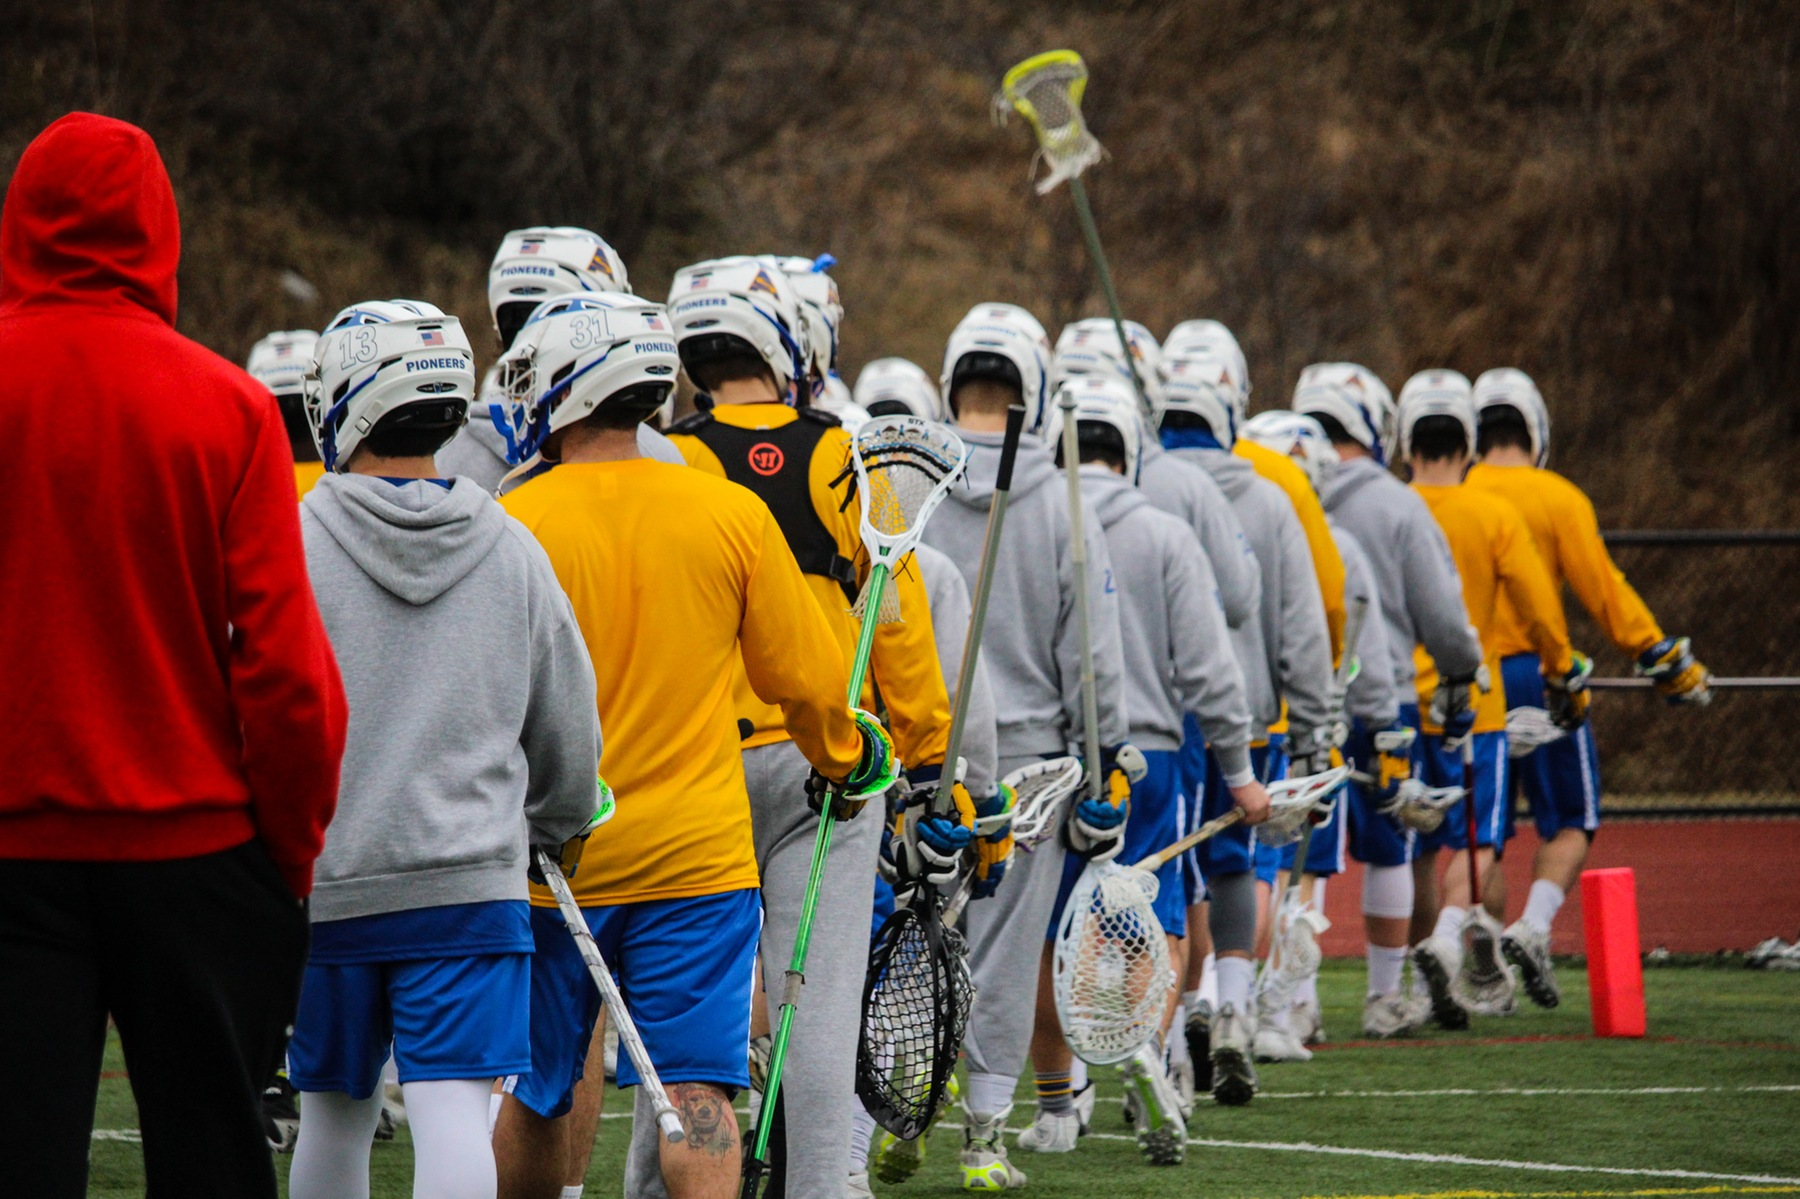 Lacrosse team heads out after warm-ups